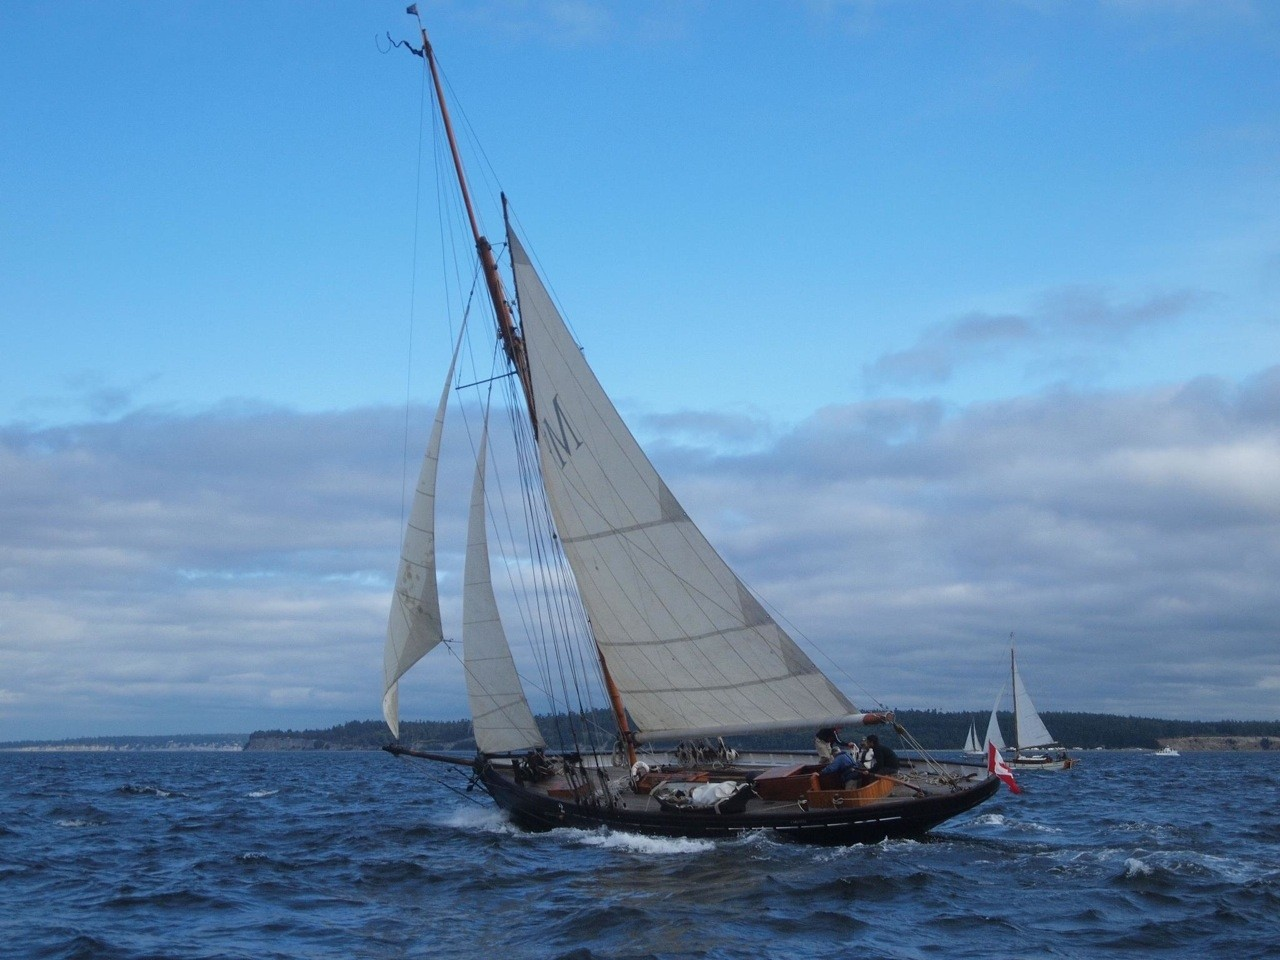 CARLOTTA was designed and built by W.H. Halford in Gloucester, England.